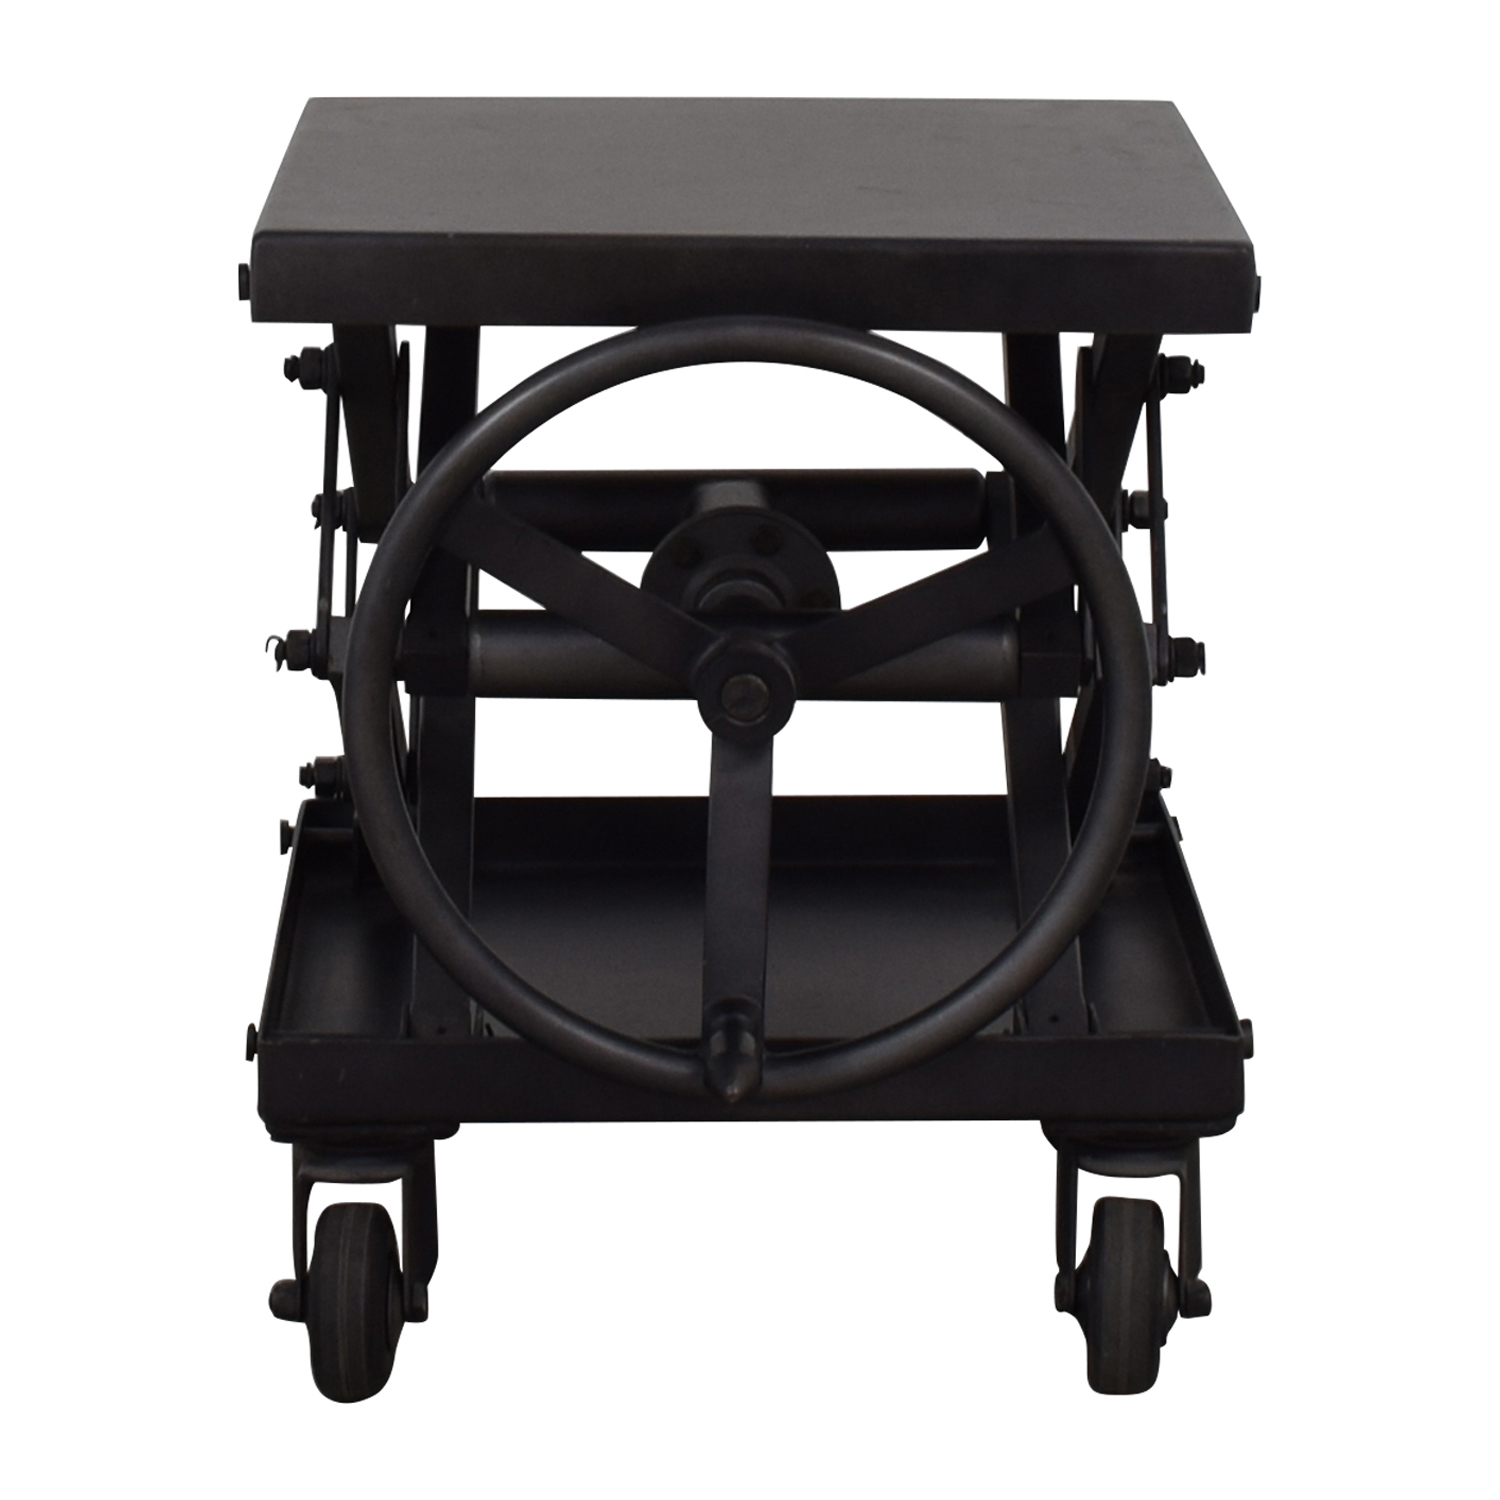 Restoration Hardware Restoration Hardware Industrial Scissor Lift End Table nyc